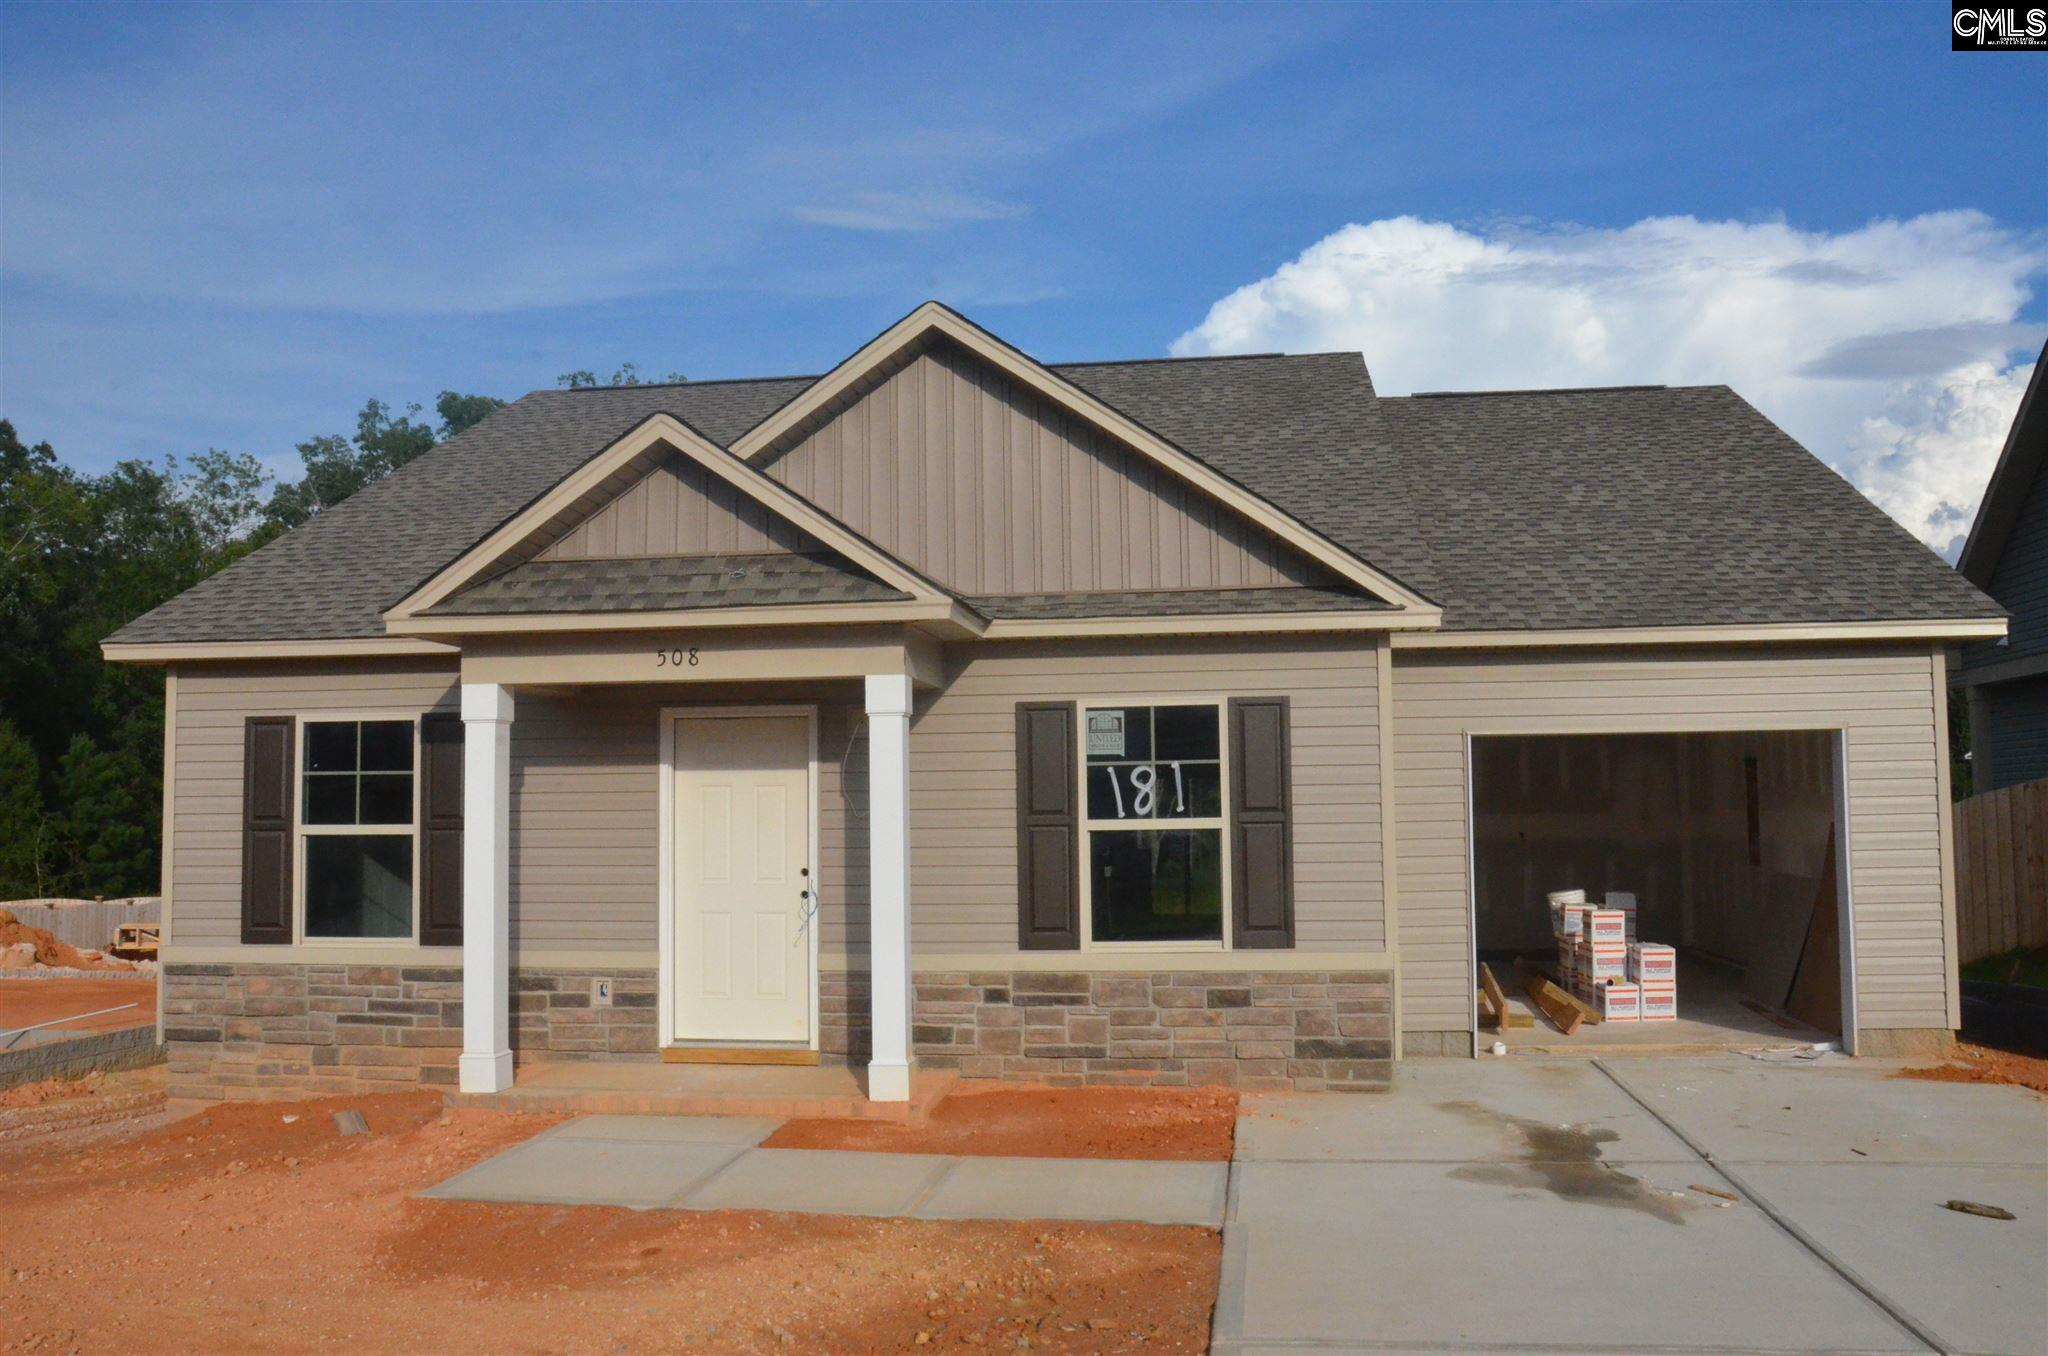 508 Connecticut #181 Chapin, SC 29036